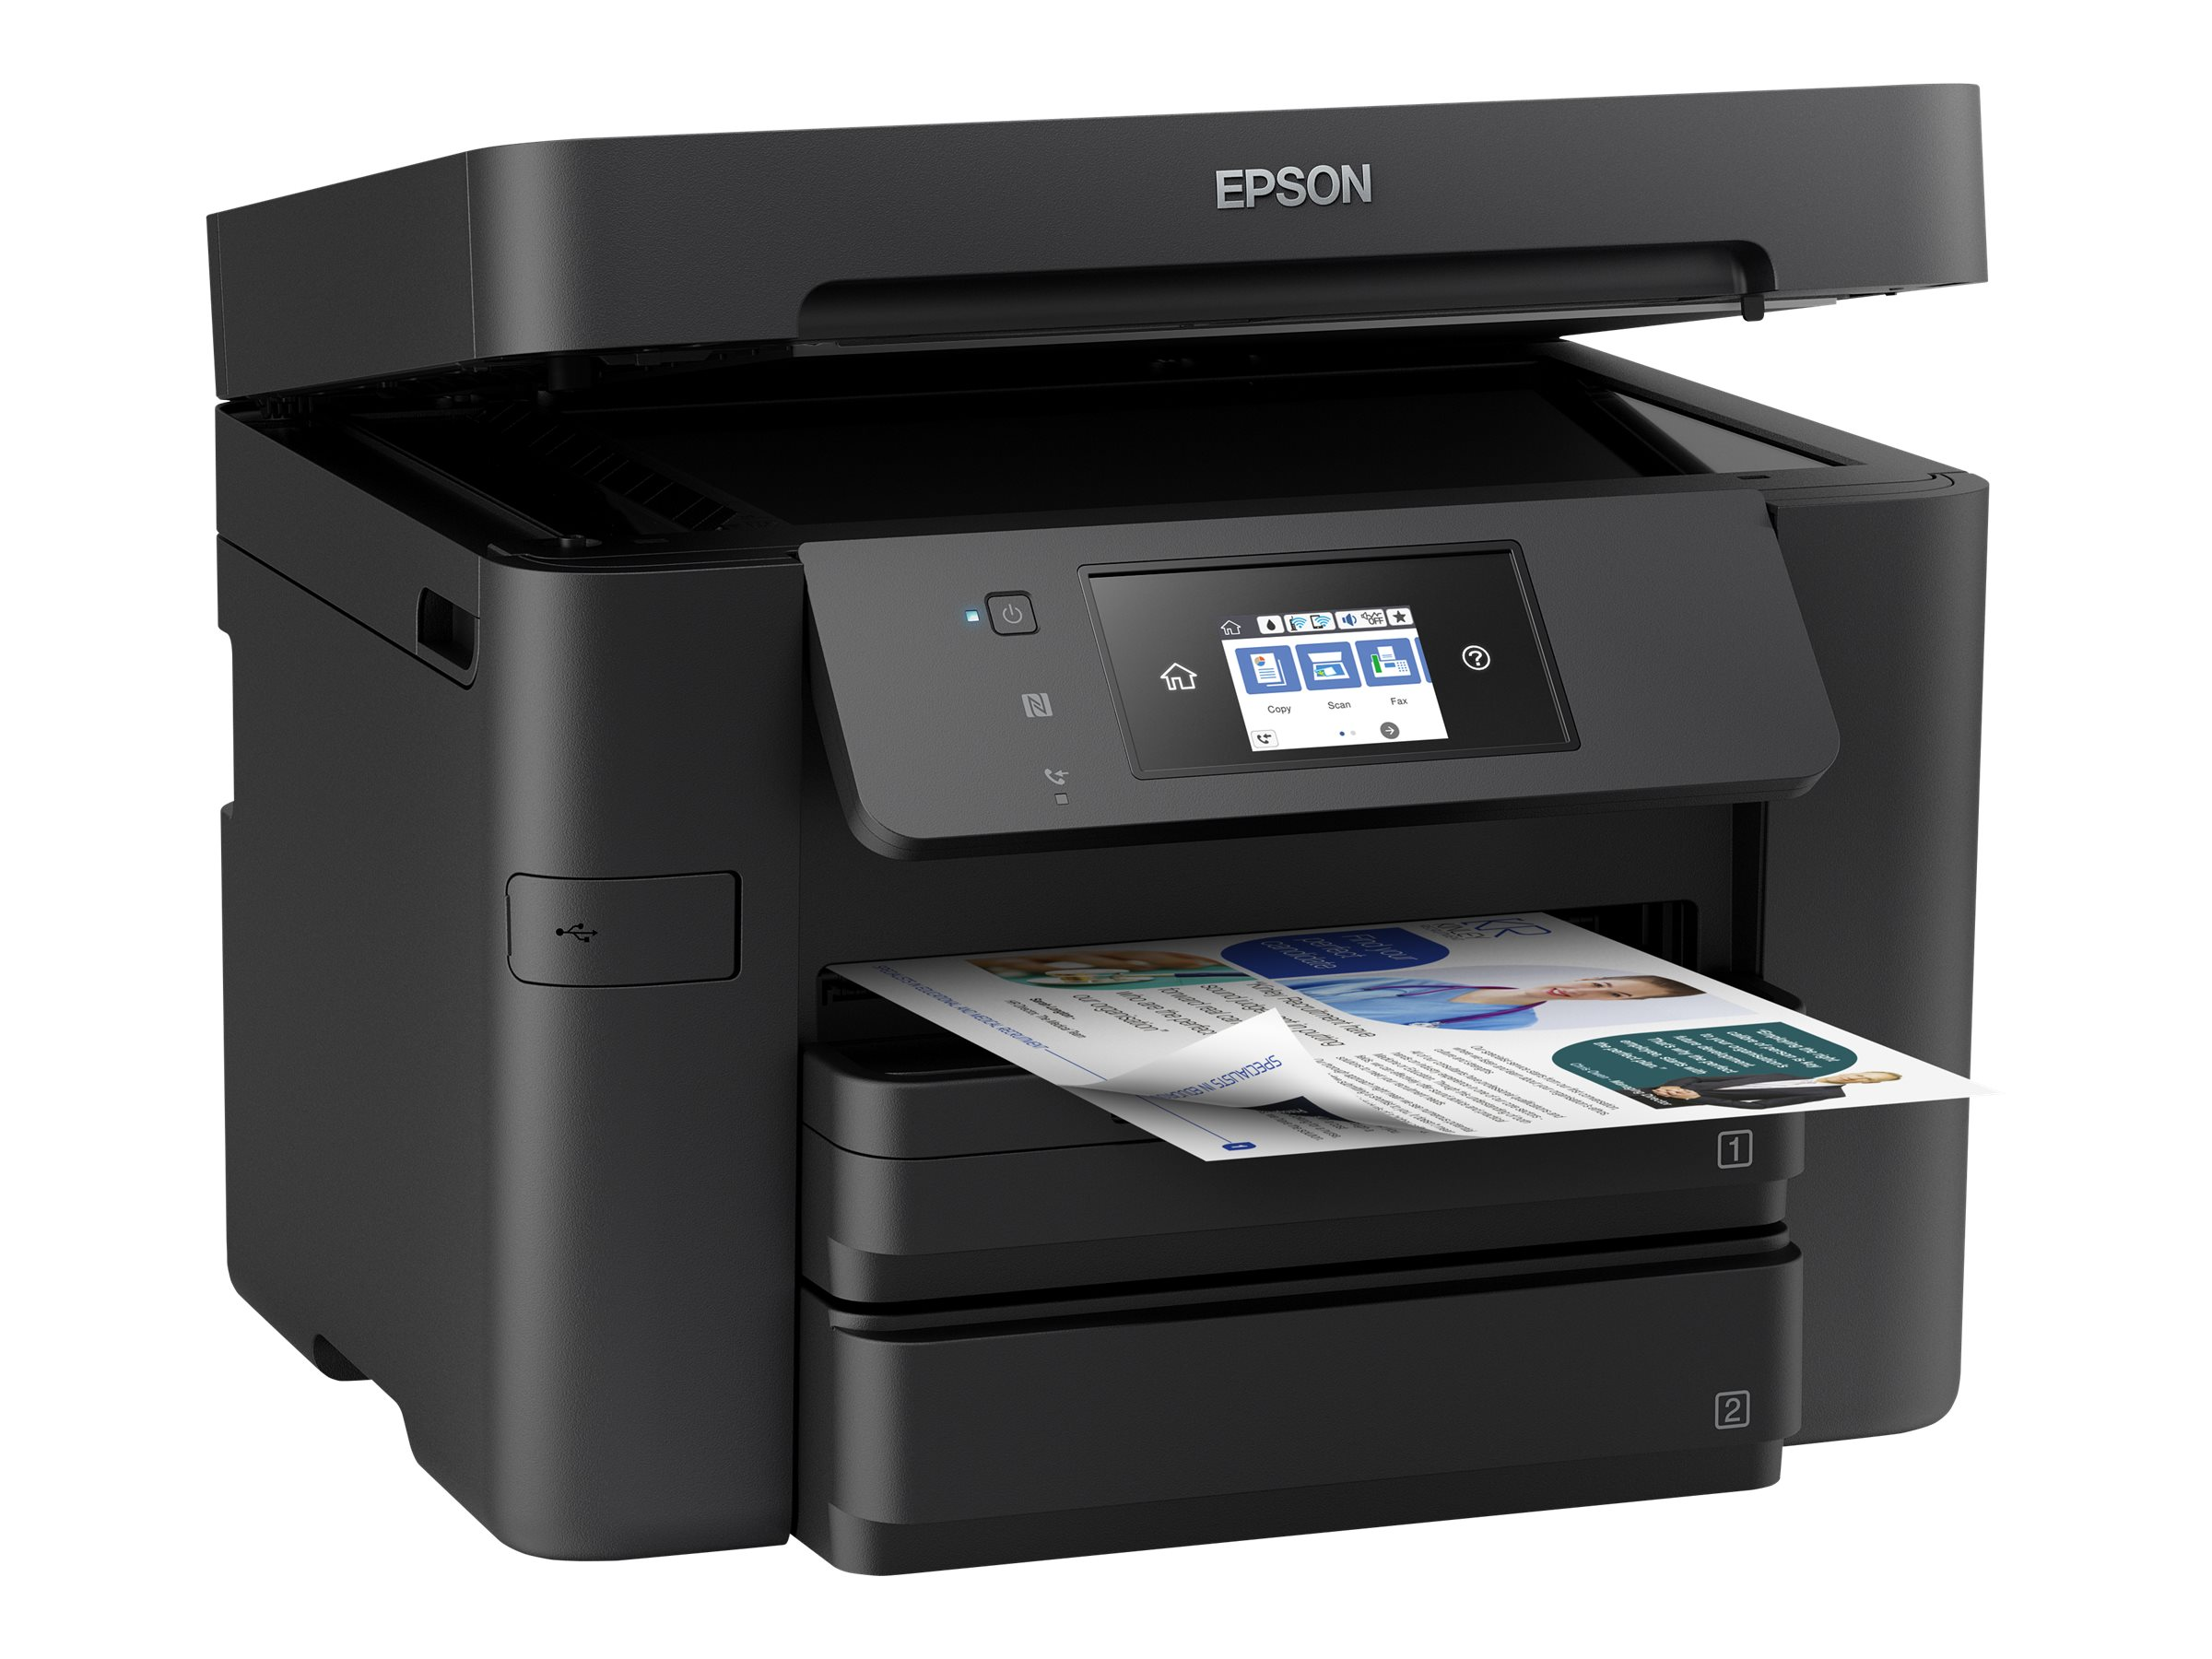 epson workforce pro wf 4730 multifunction printer color rh howardstore com Clip Art User Guide epson workforce 845 online user's guide